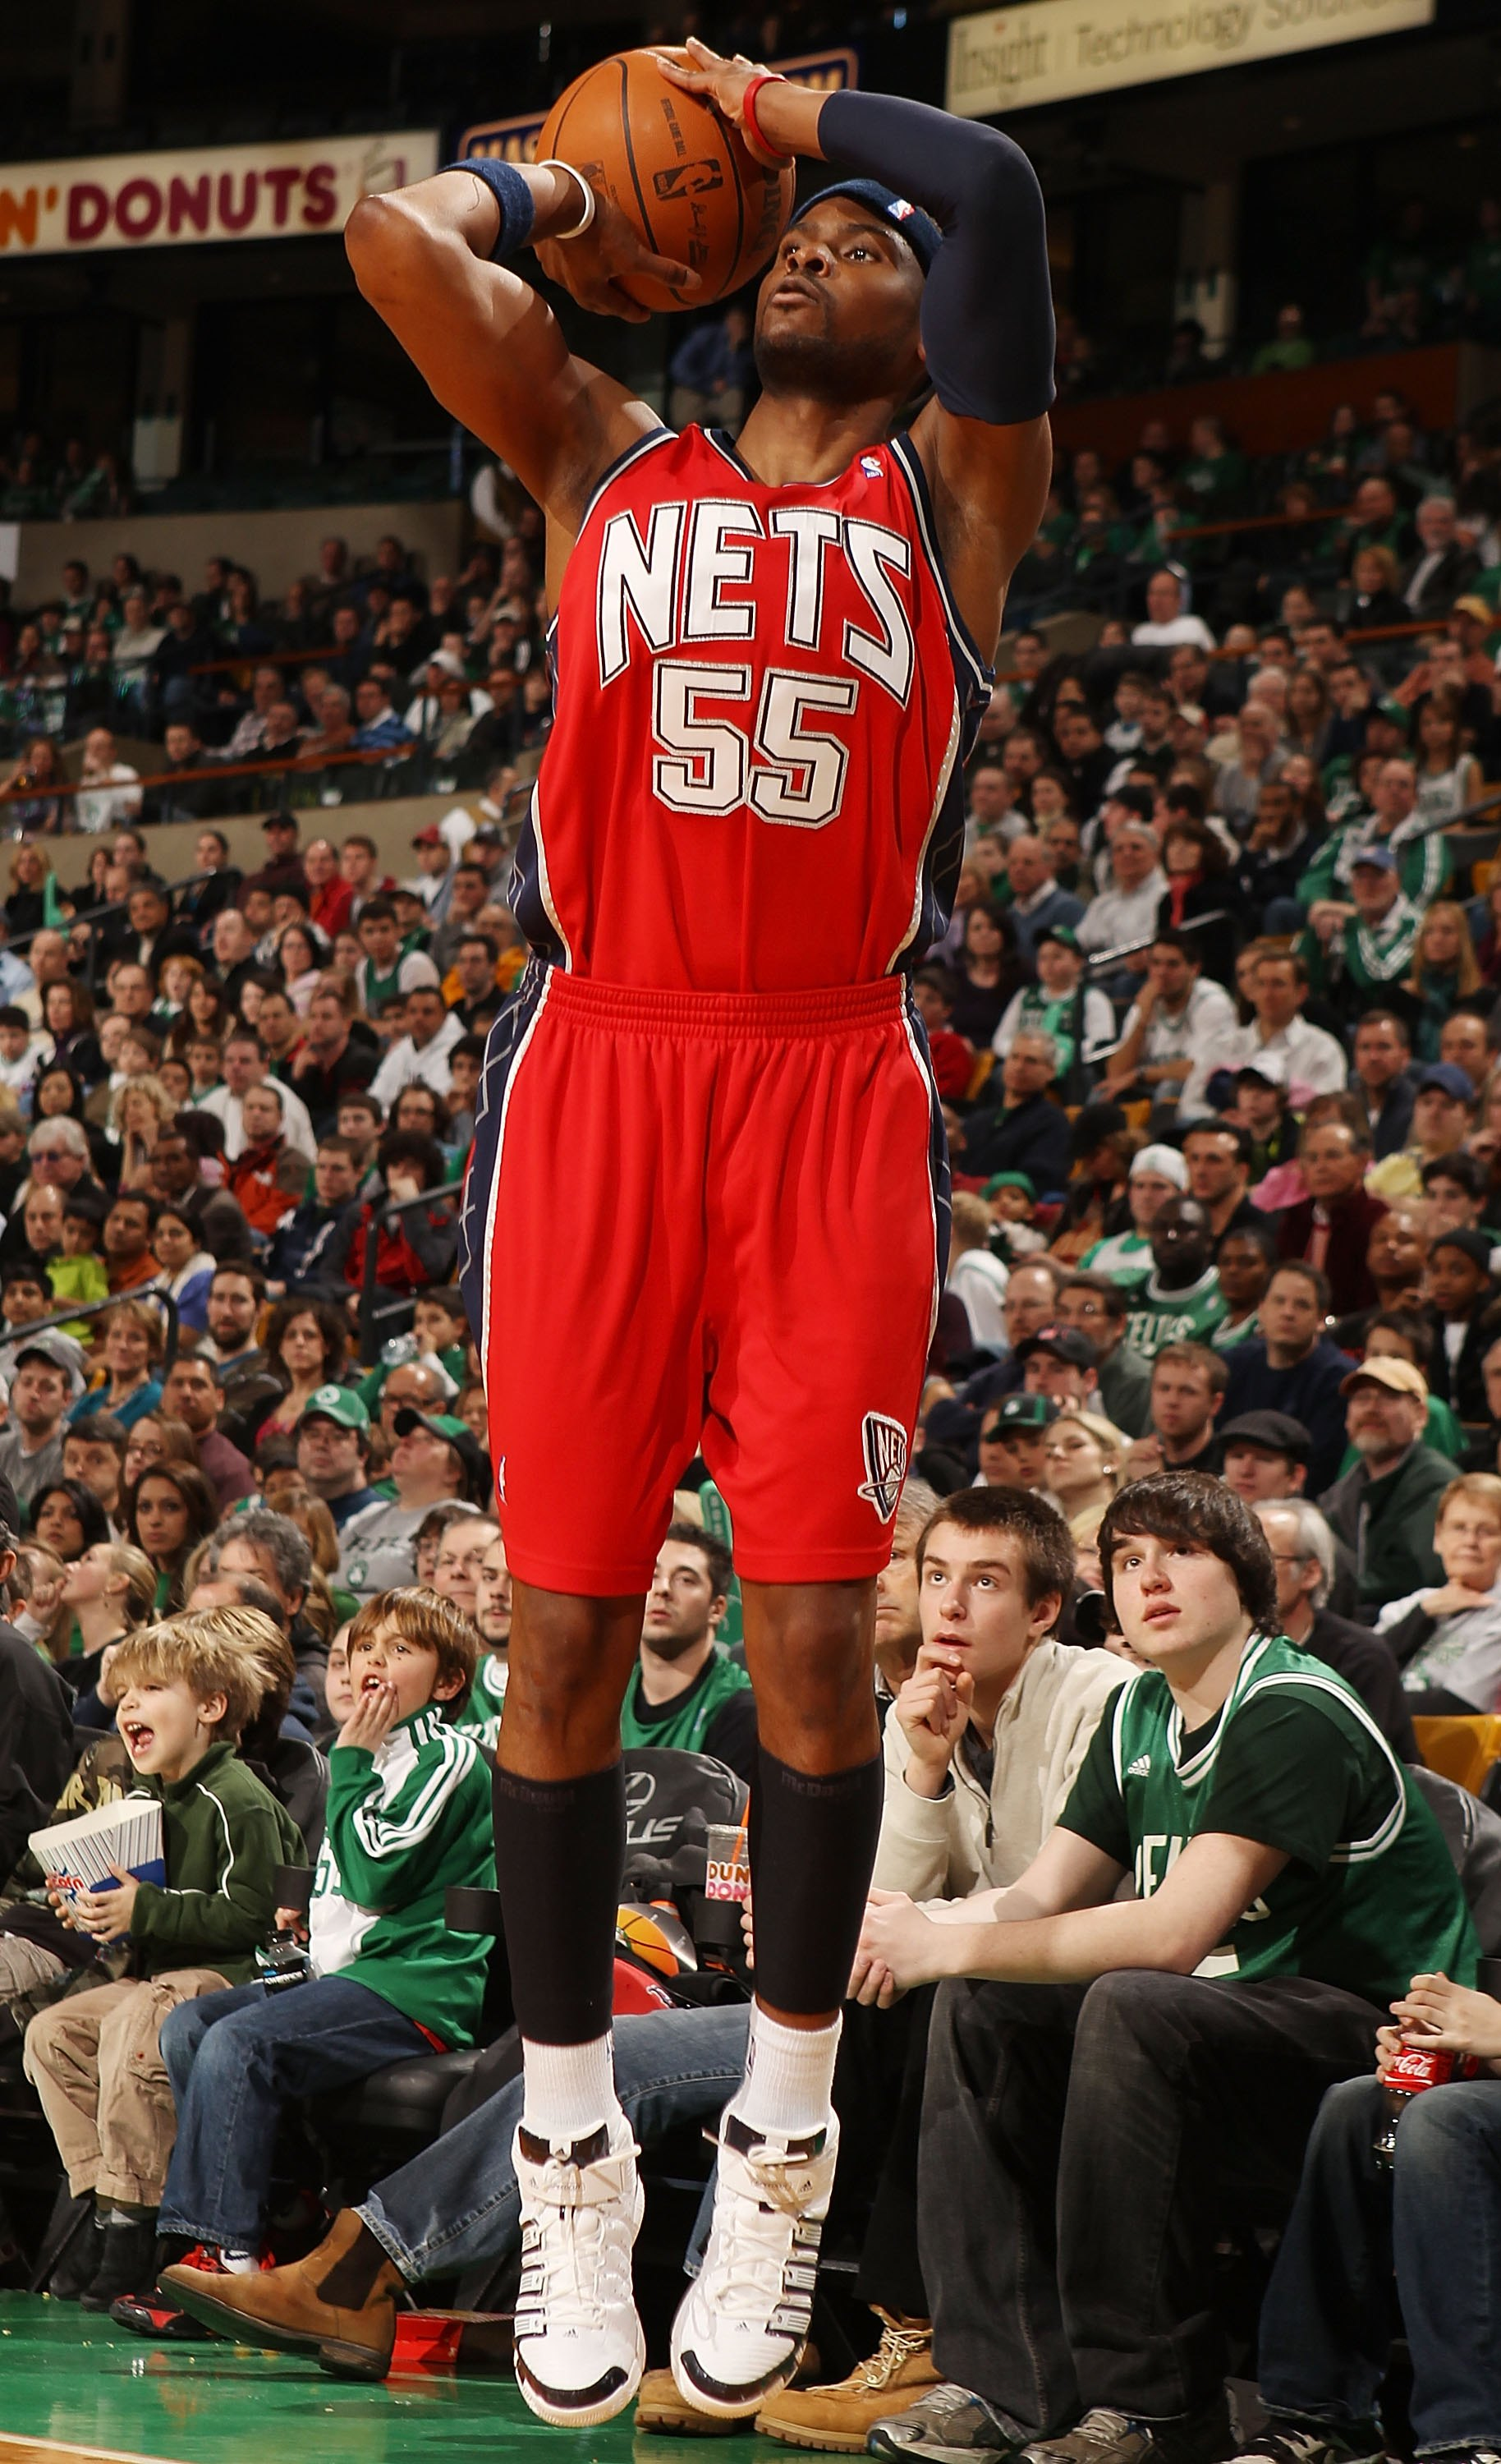 BOSTON - FEBRUARY 27:  Keyon Dooling #55 of the New Jersey Nets takes a shot in the second half against the Boston Celtics at the TD Garden on February 27, 2010 in Boston, Massachusetts. The Nets defeated the Celtics 104-96.  NOTE TO USER: User expressly